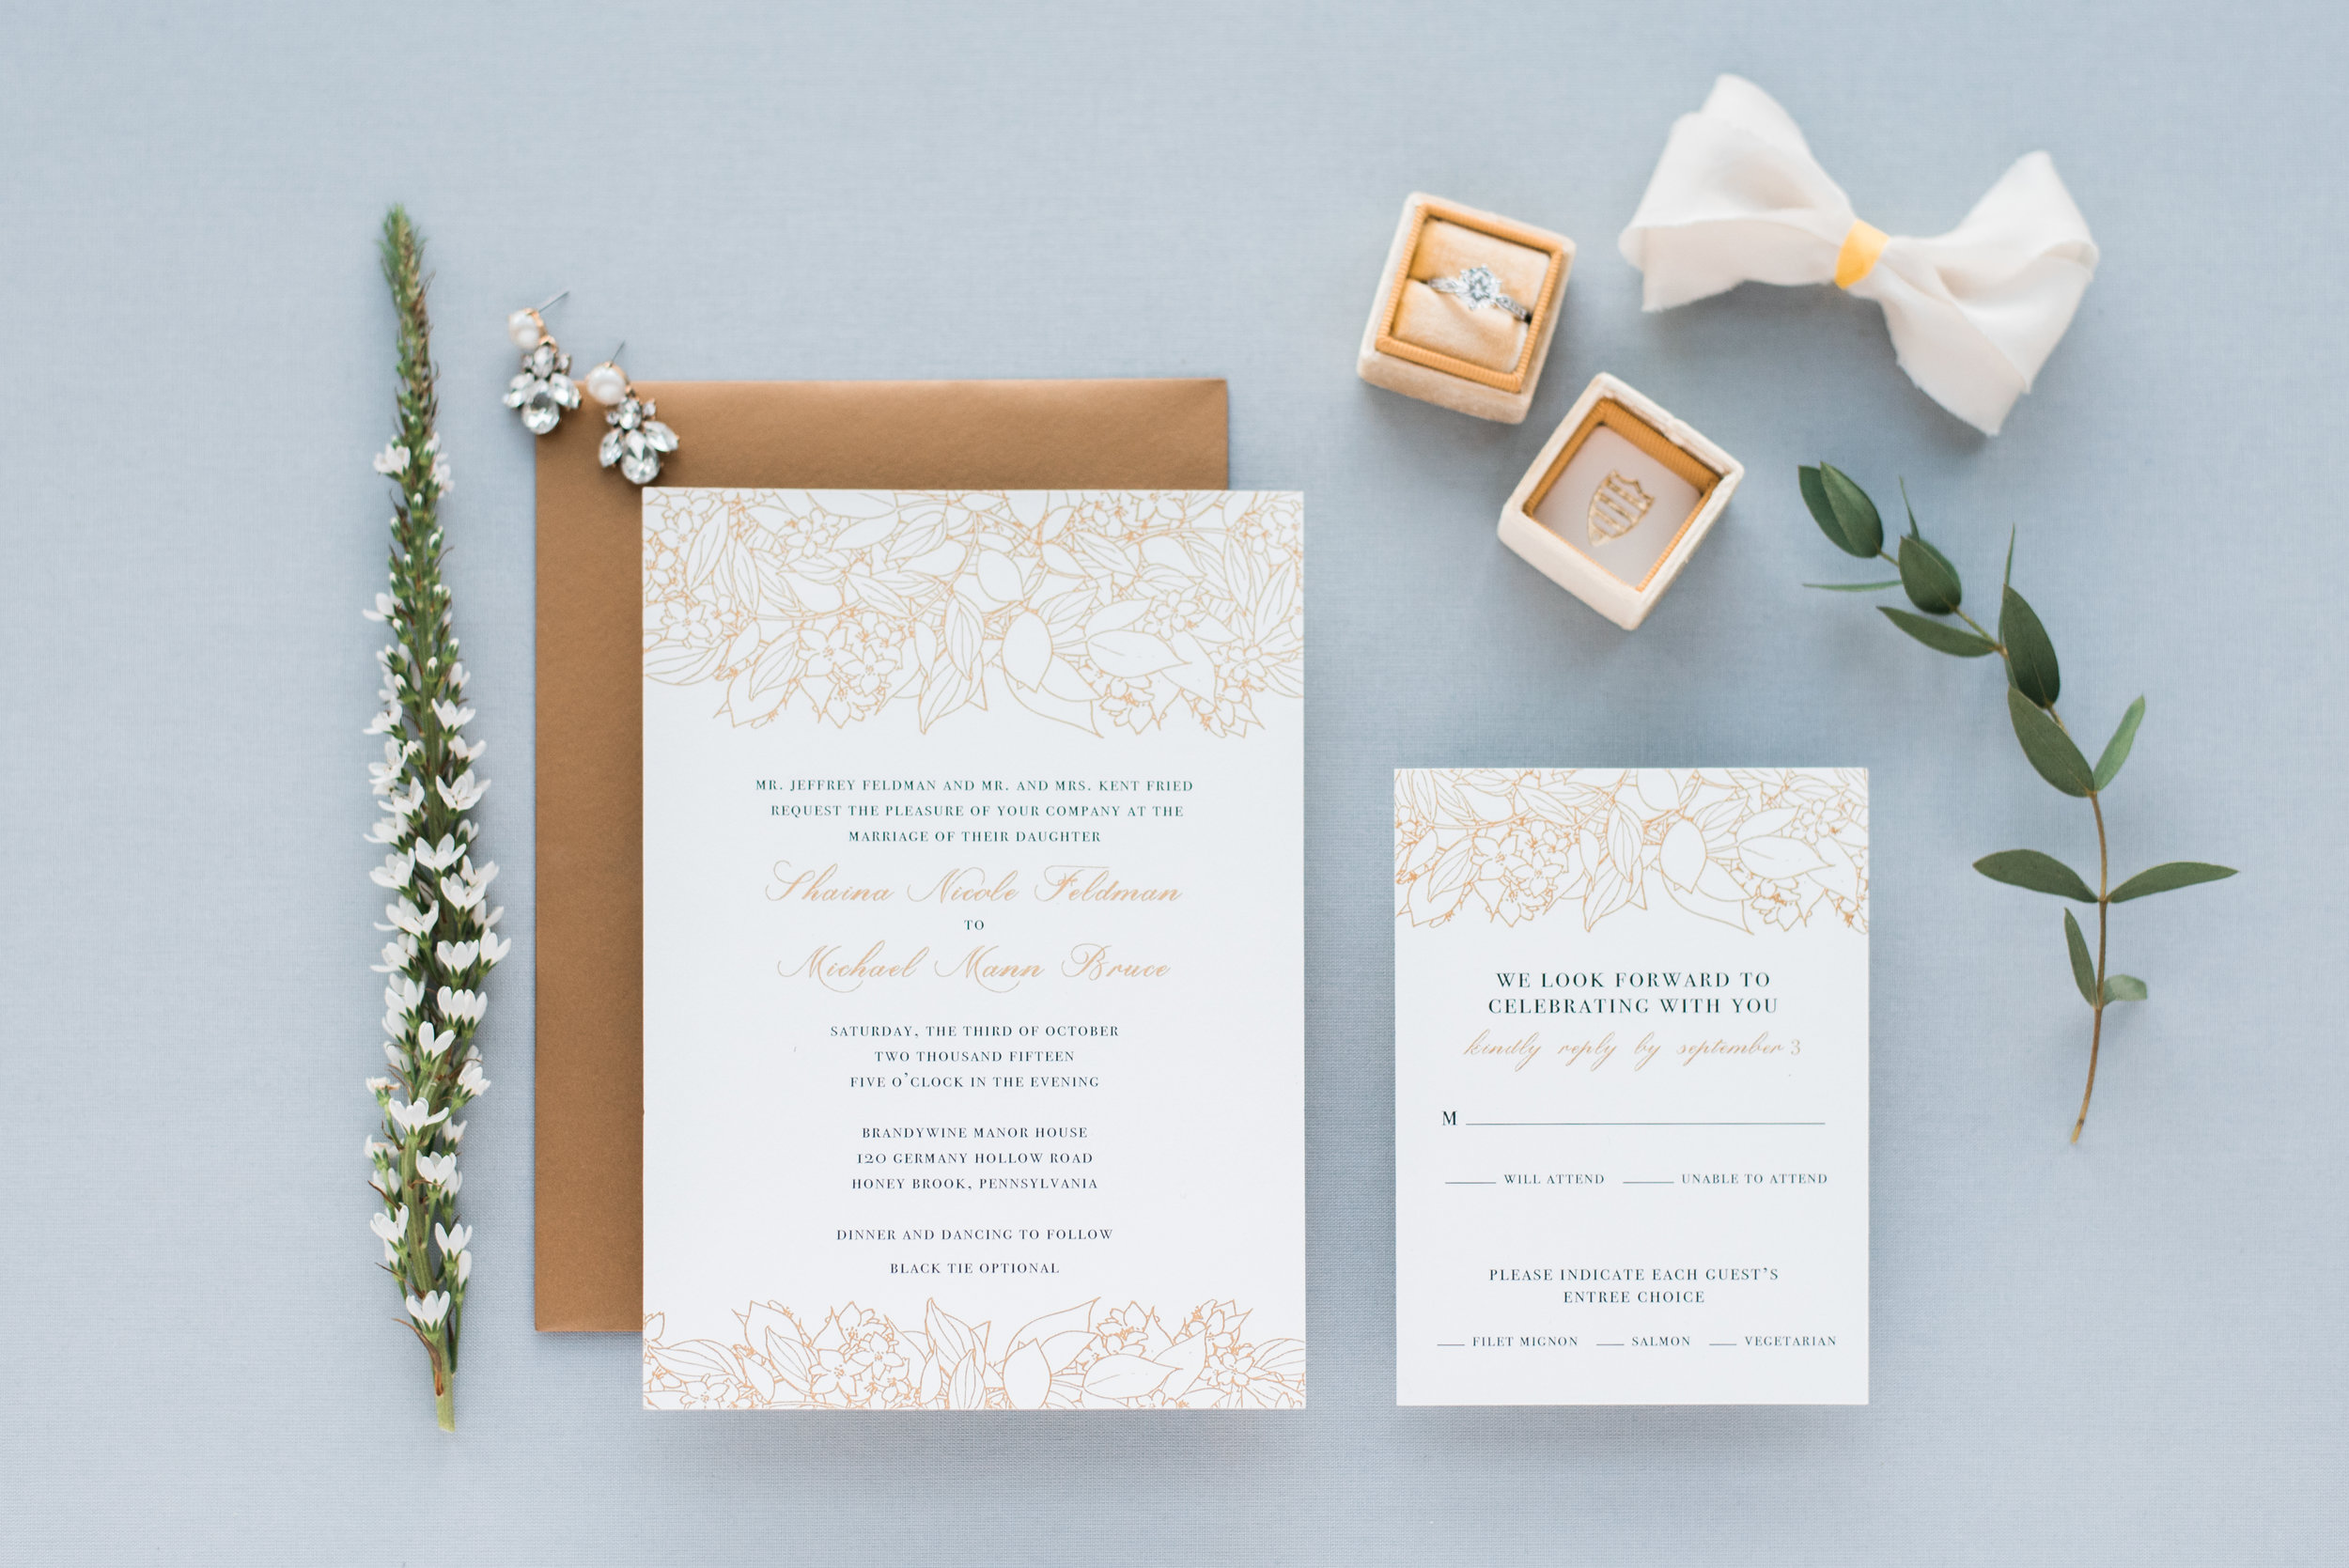 Jessica K Feiden Photography_Wedding Invite-1.jpg